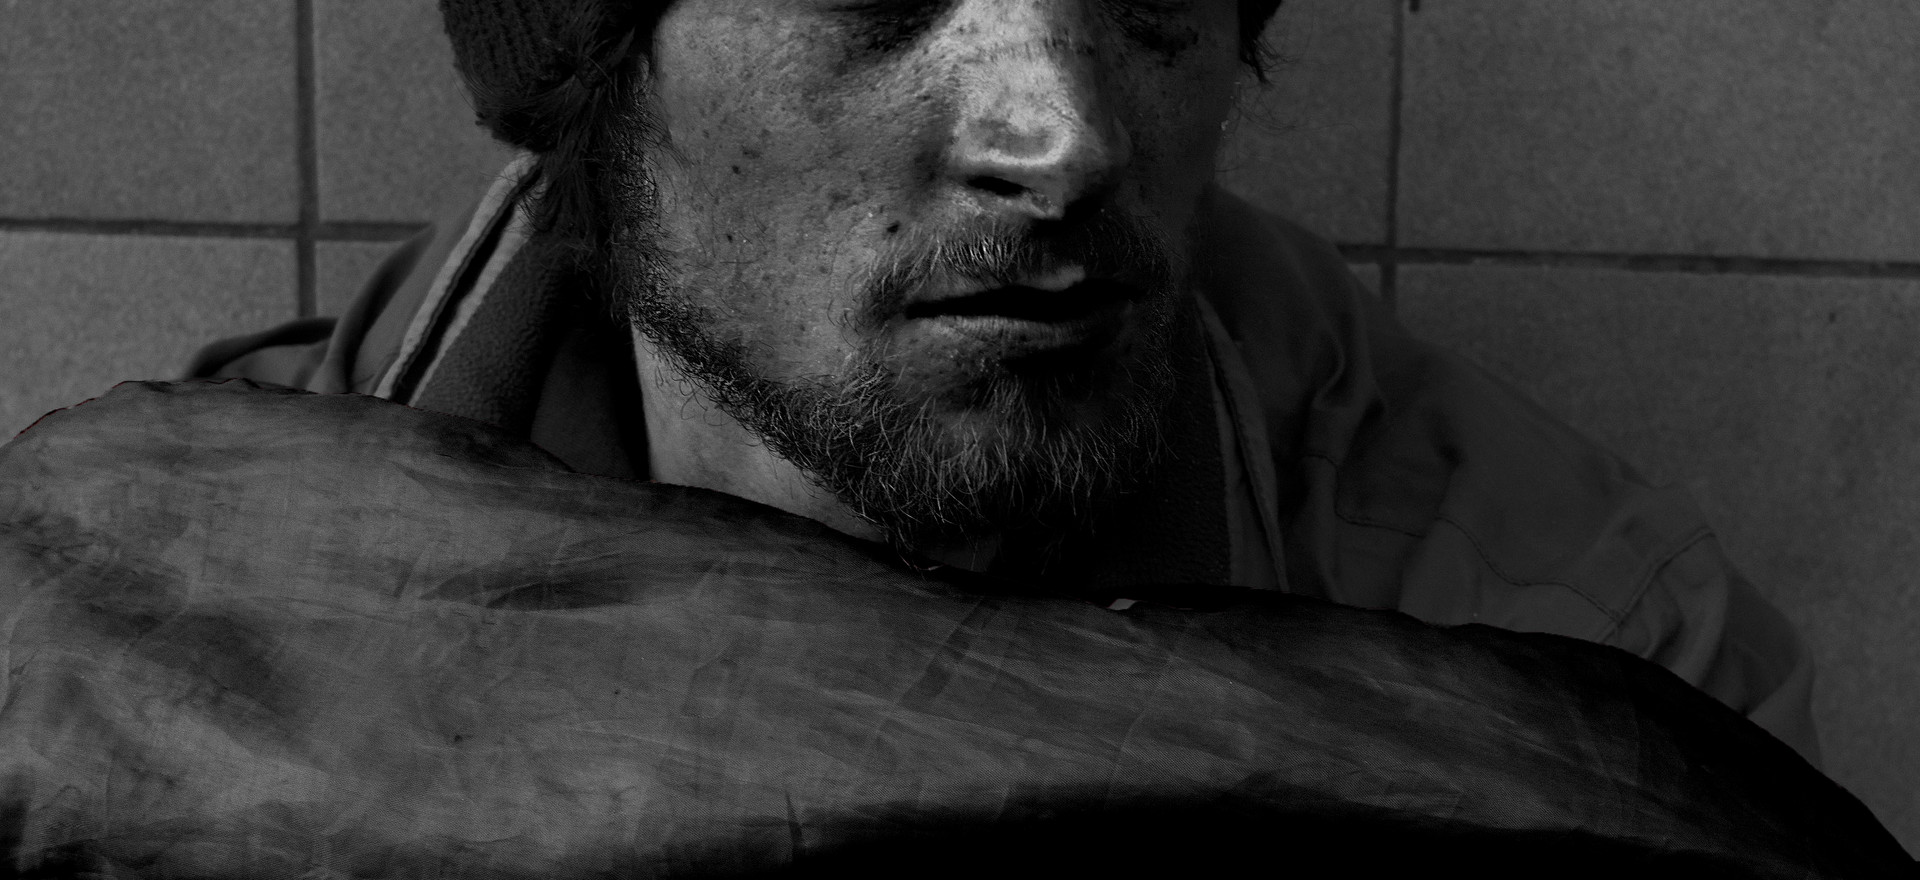 University Project on the Homeless; Mark